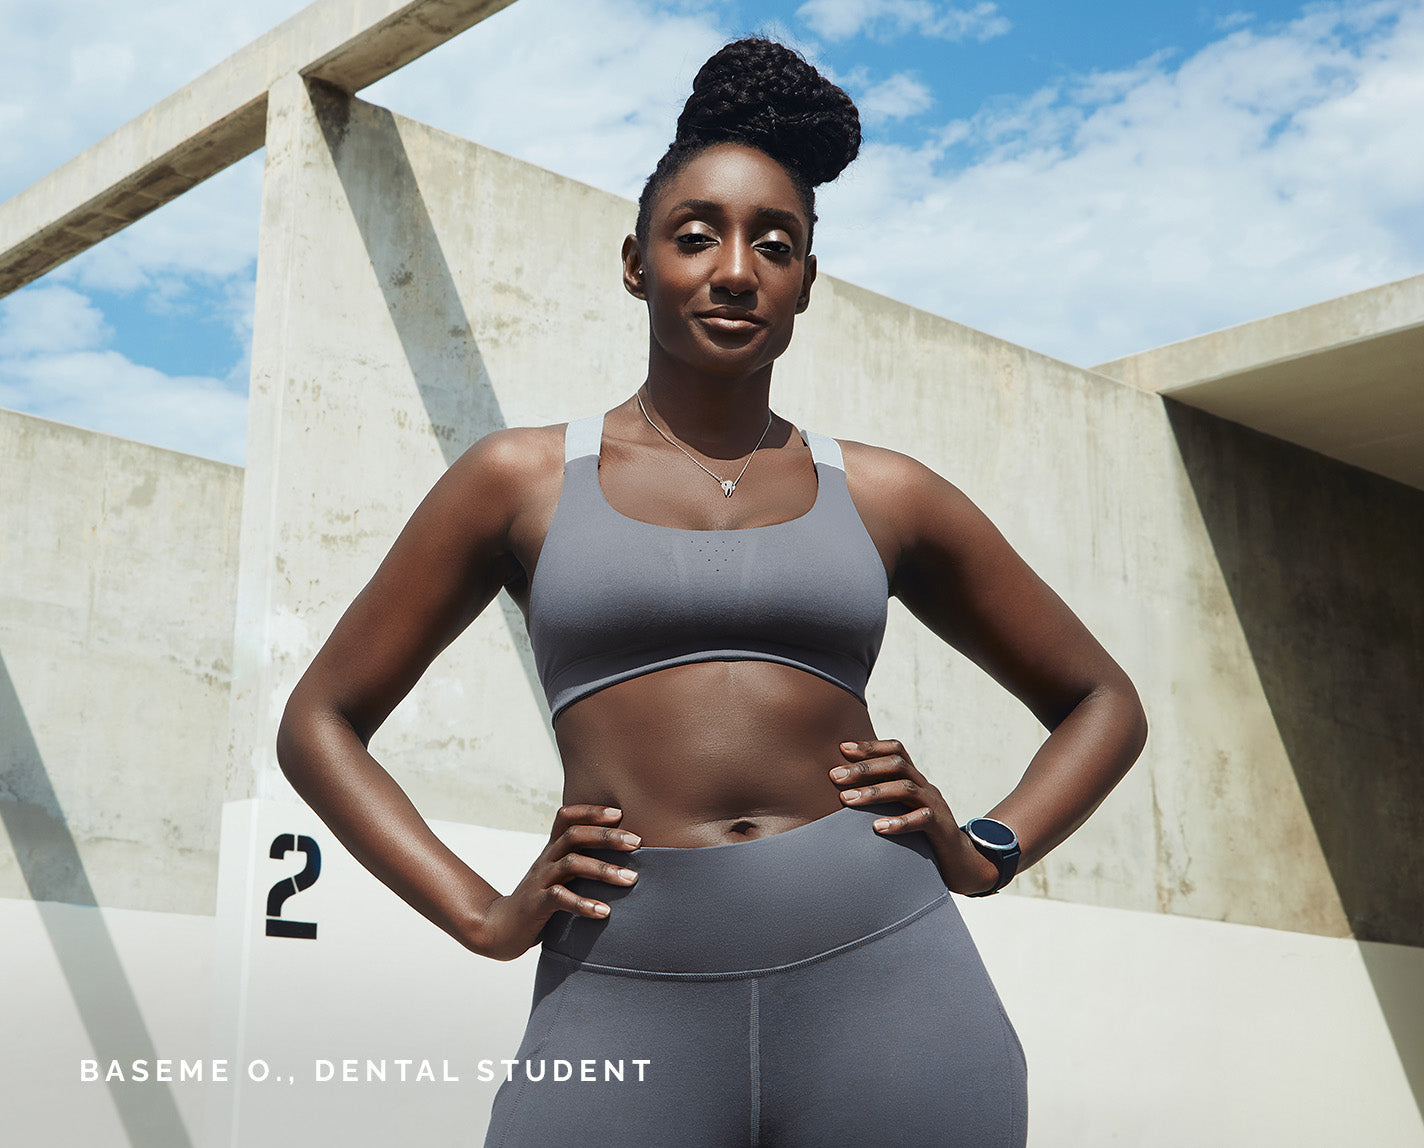 Peak performance to get you from yoga to running errands to a full shift. The 300 Sports Performance Bra is designed with perforated detail for airflow, plus FIGS elastic straps, and features our proprietary FIONdry fabric with moisture-wicking technology.